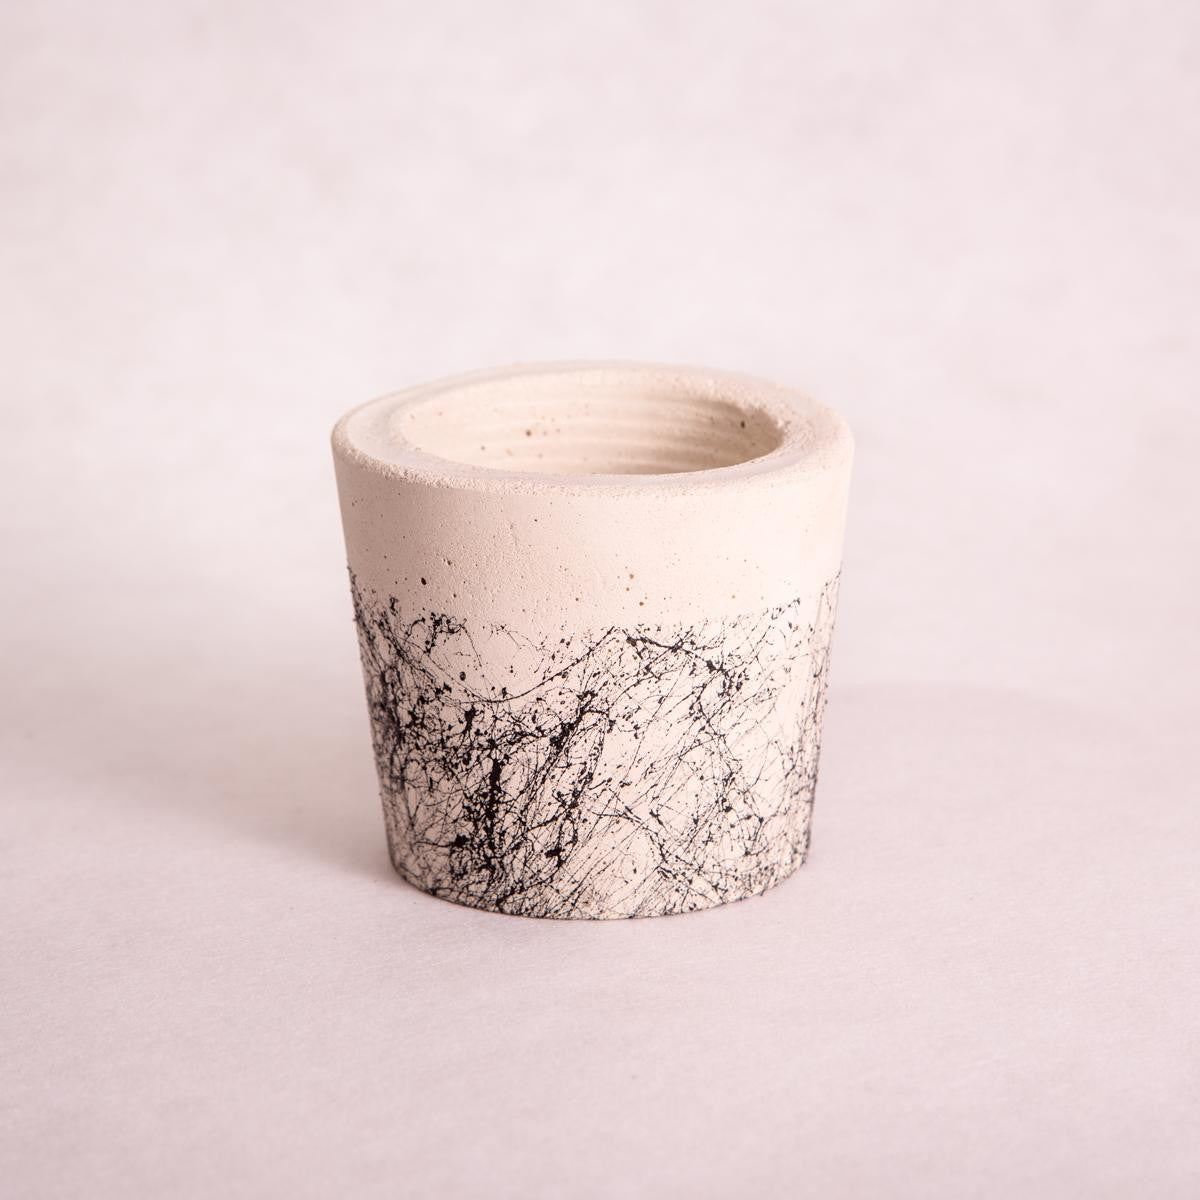 Tub Concrete Planters - Splatter/Granite - Concrete Planter - Throw Some Seeds - Australian gardening gifts and eco products online!